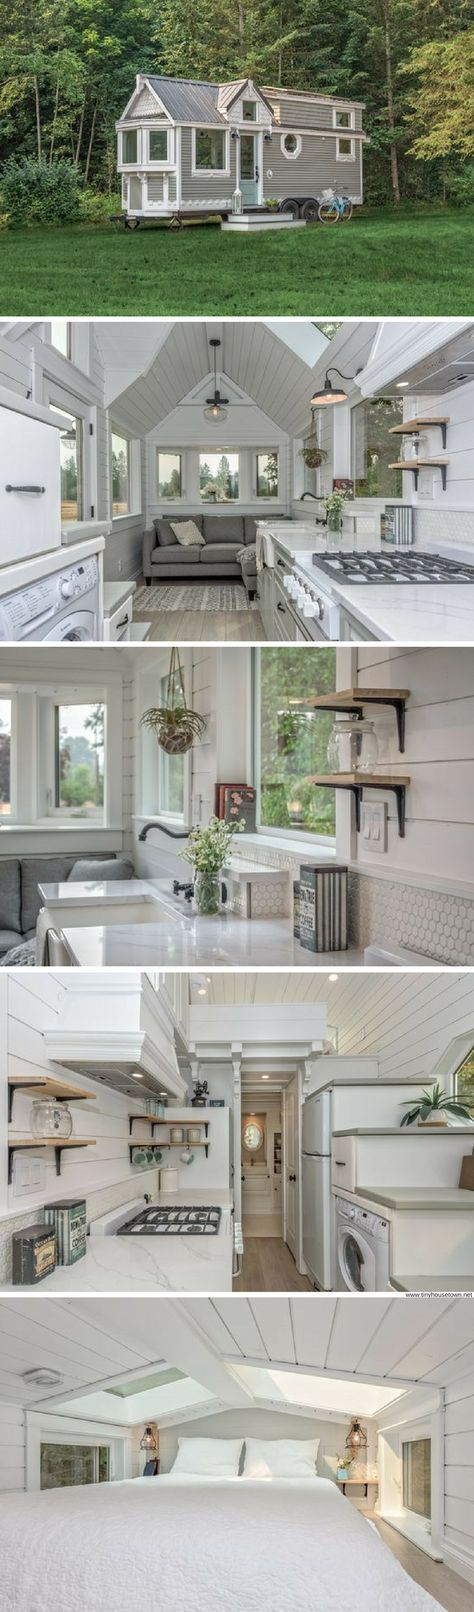 Tiny House Ideas 16